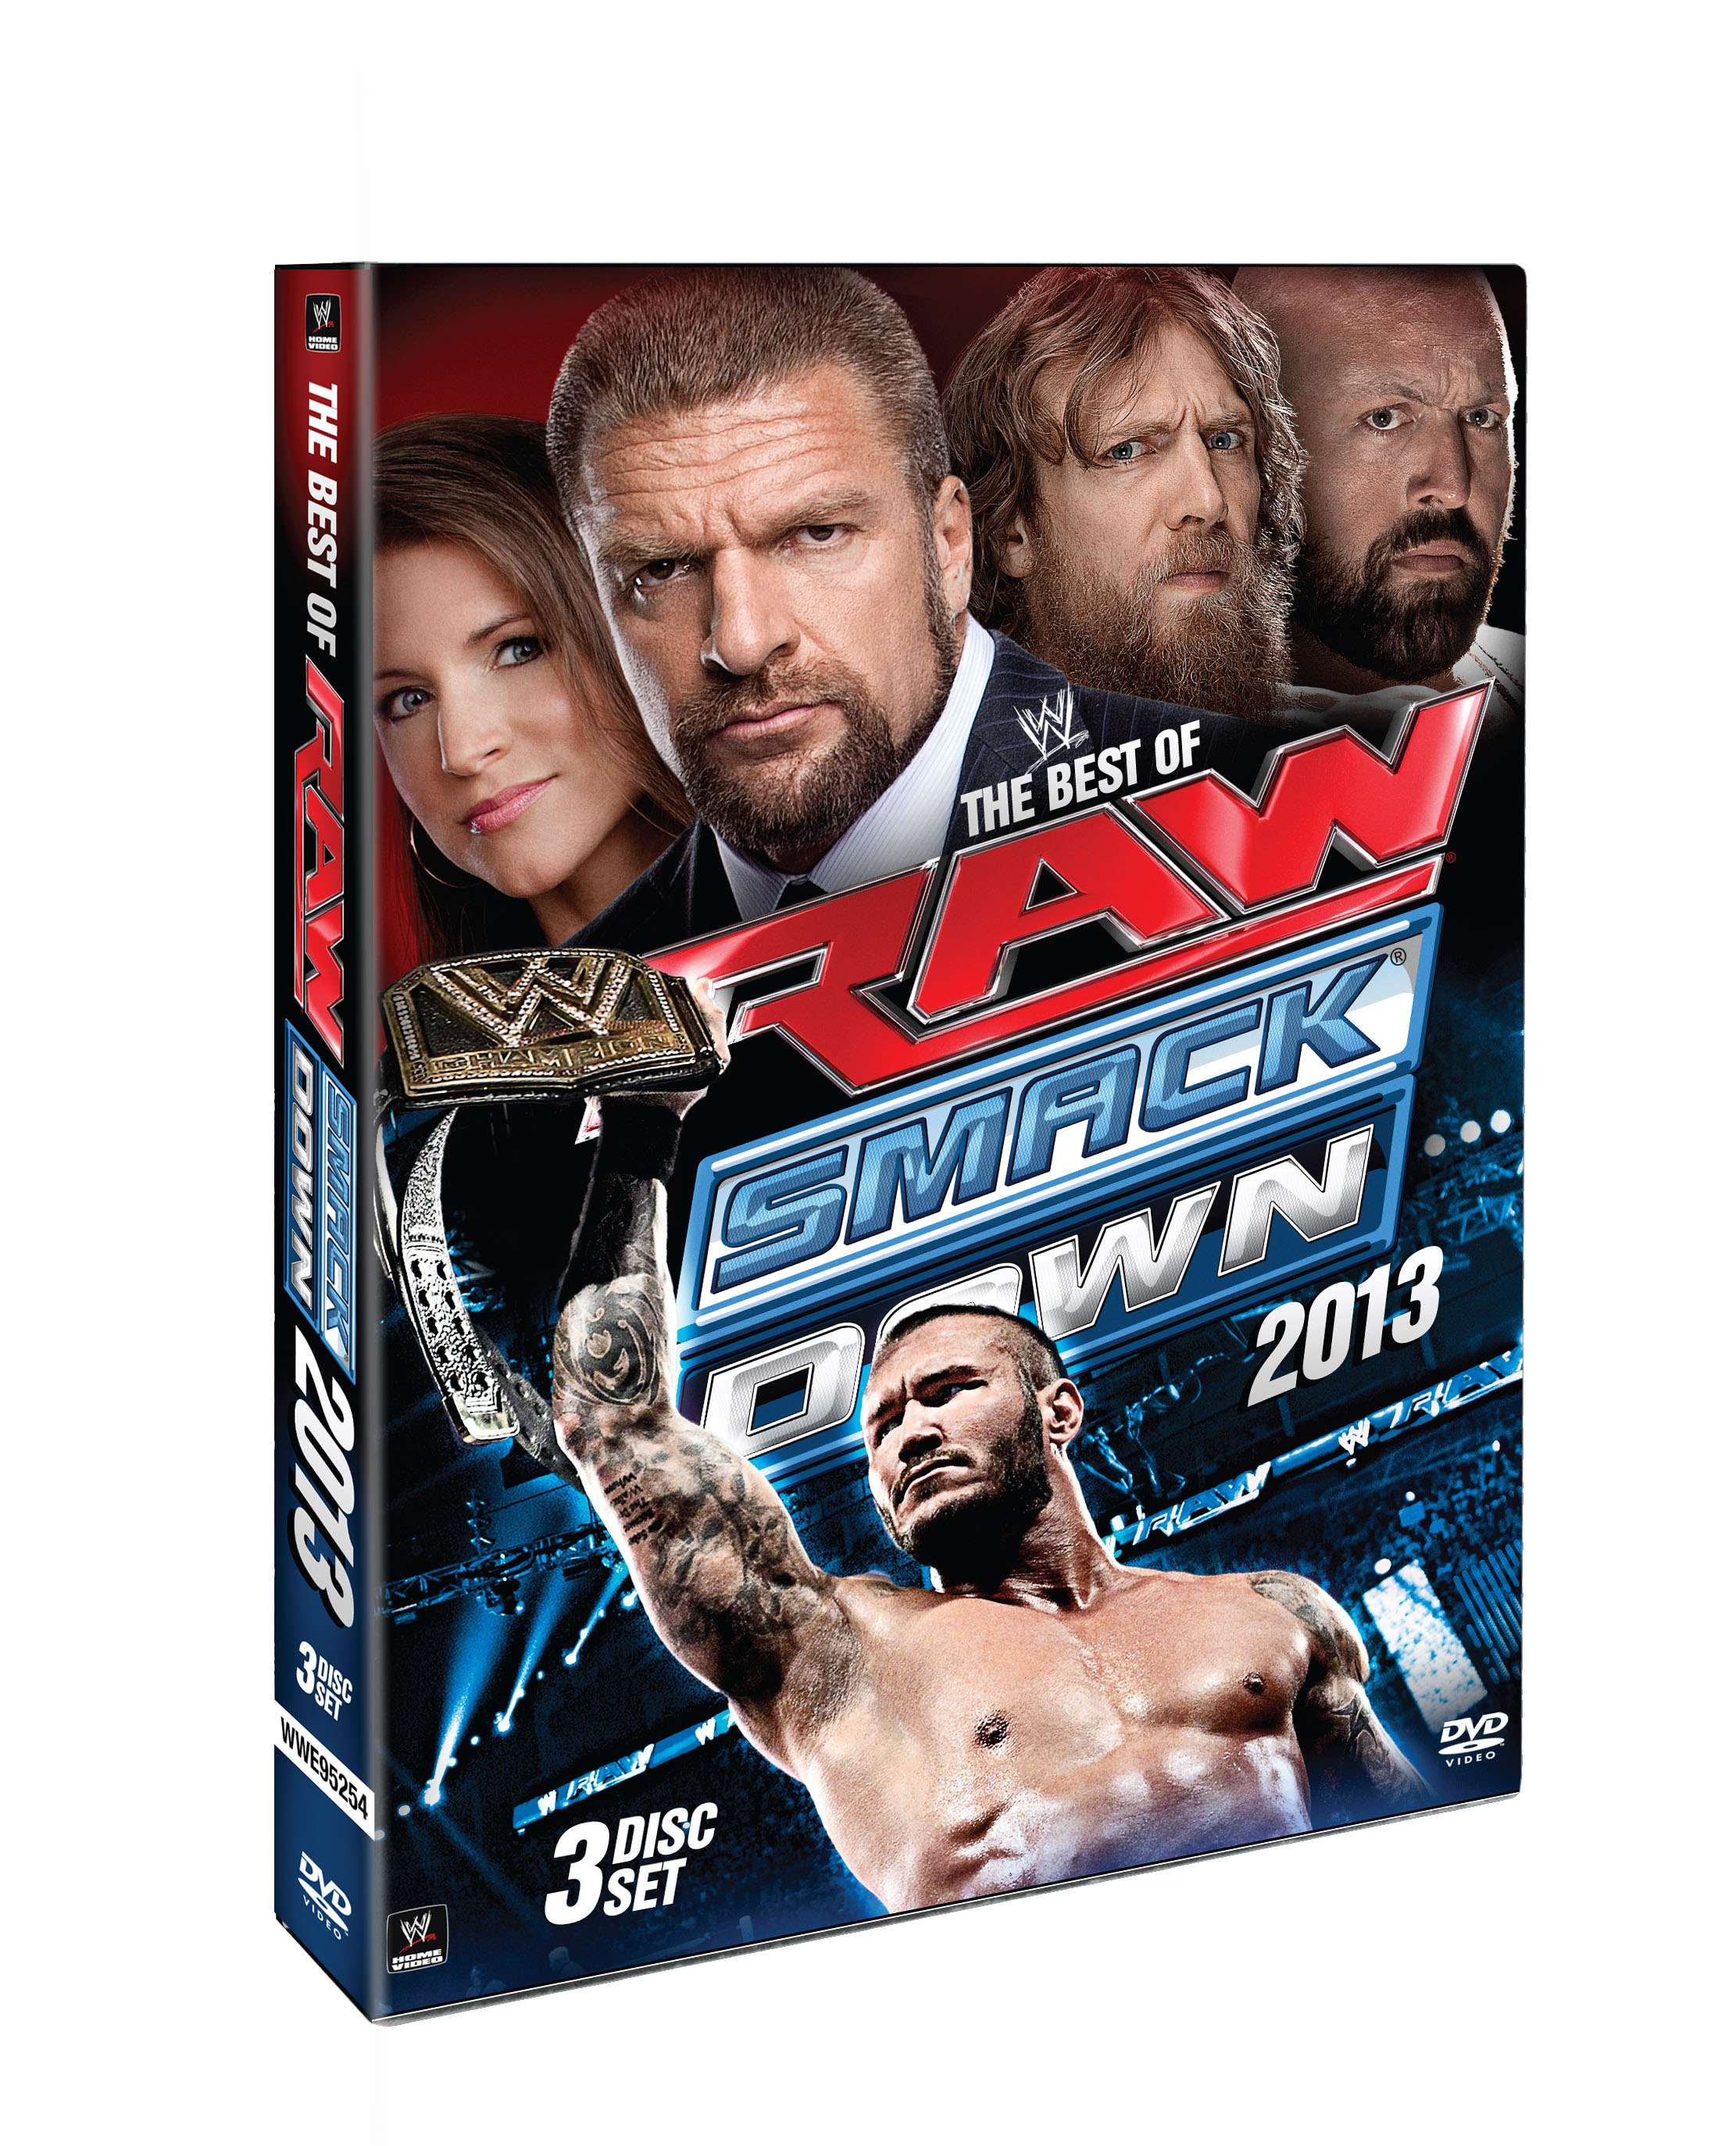 The Best Of Raw And Smackdown 2013 - WWE - Cinedigm Entertainment